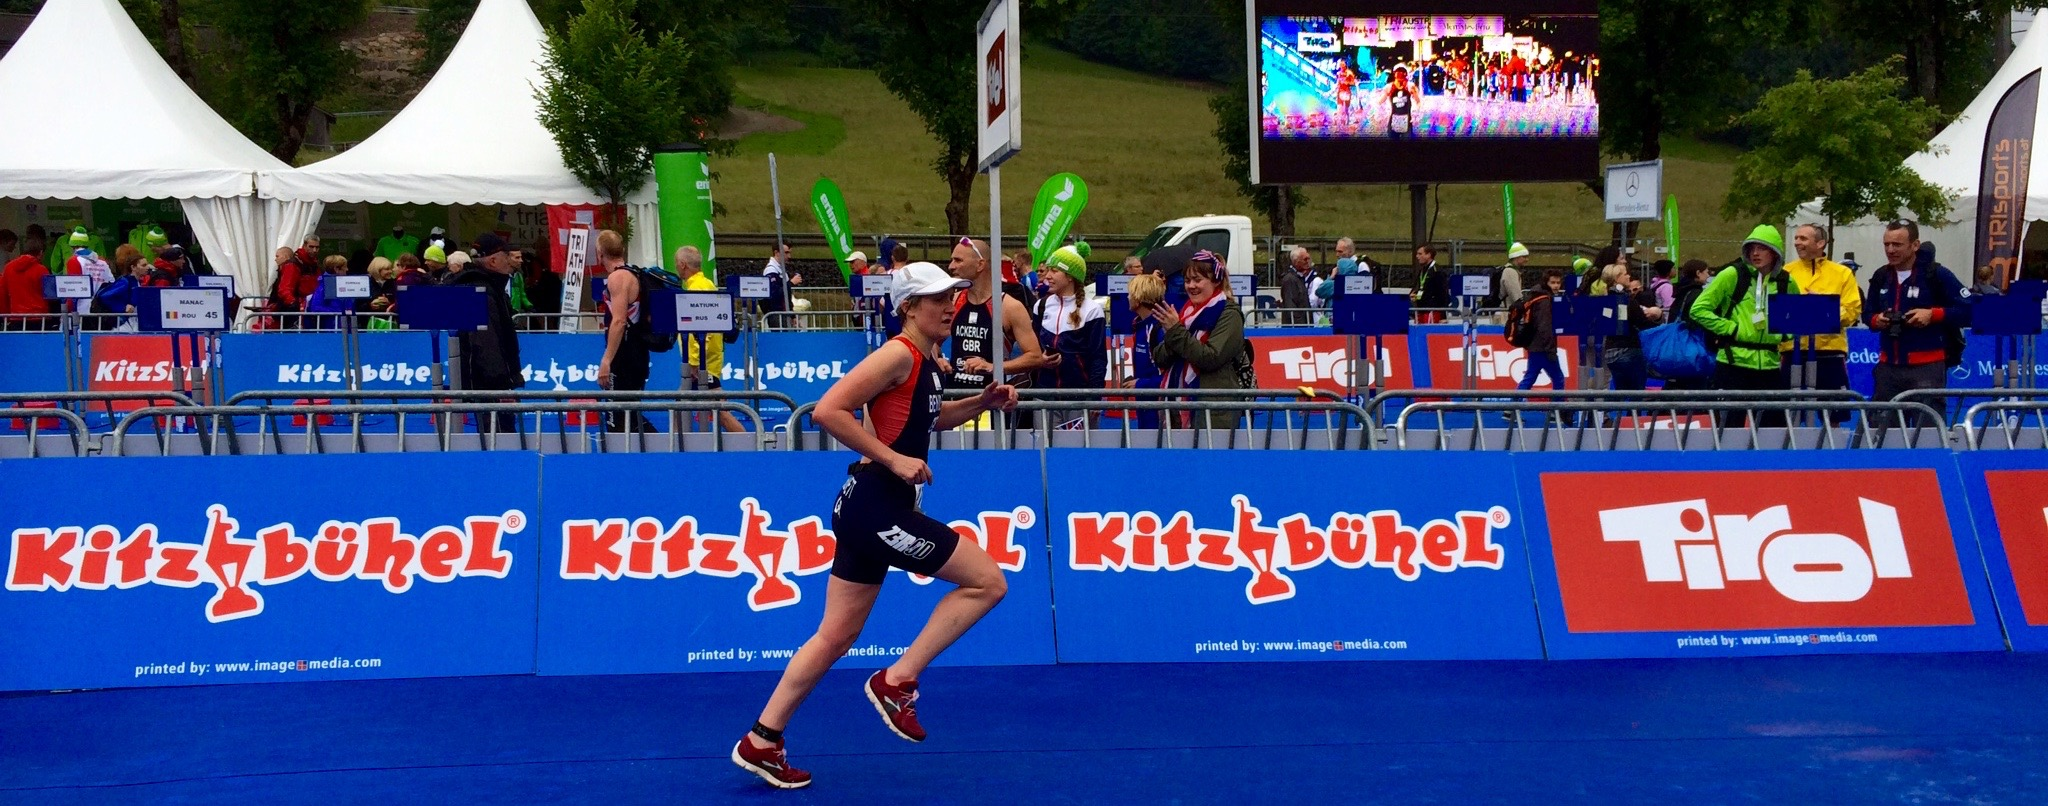 European Triathlon Championship 2015